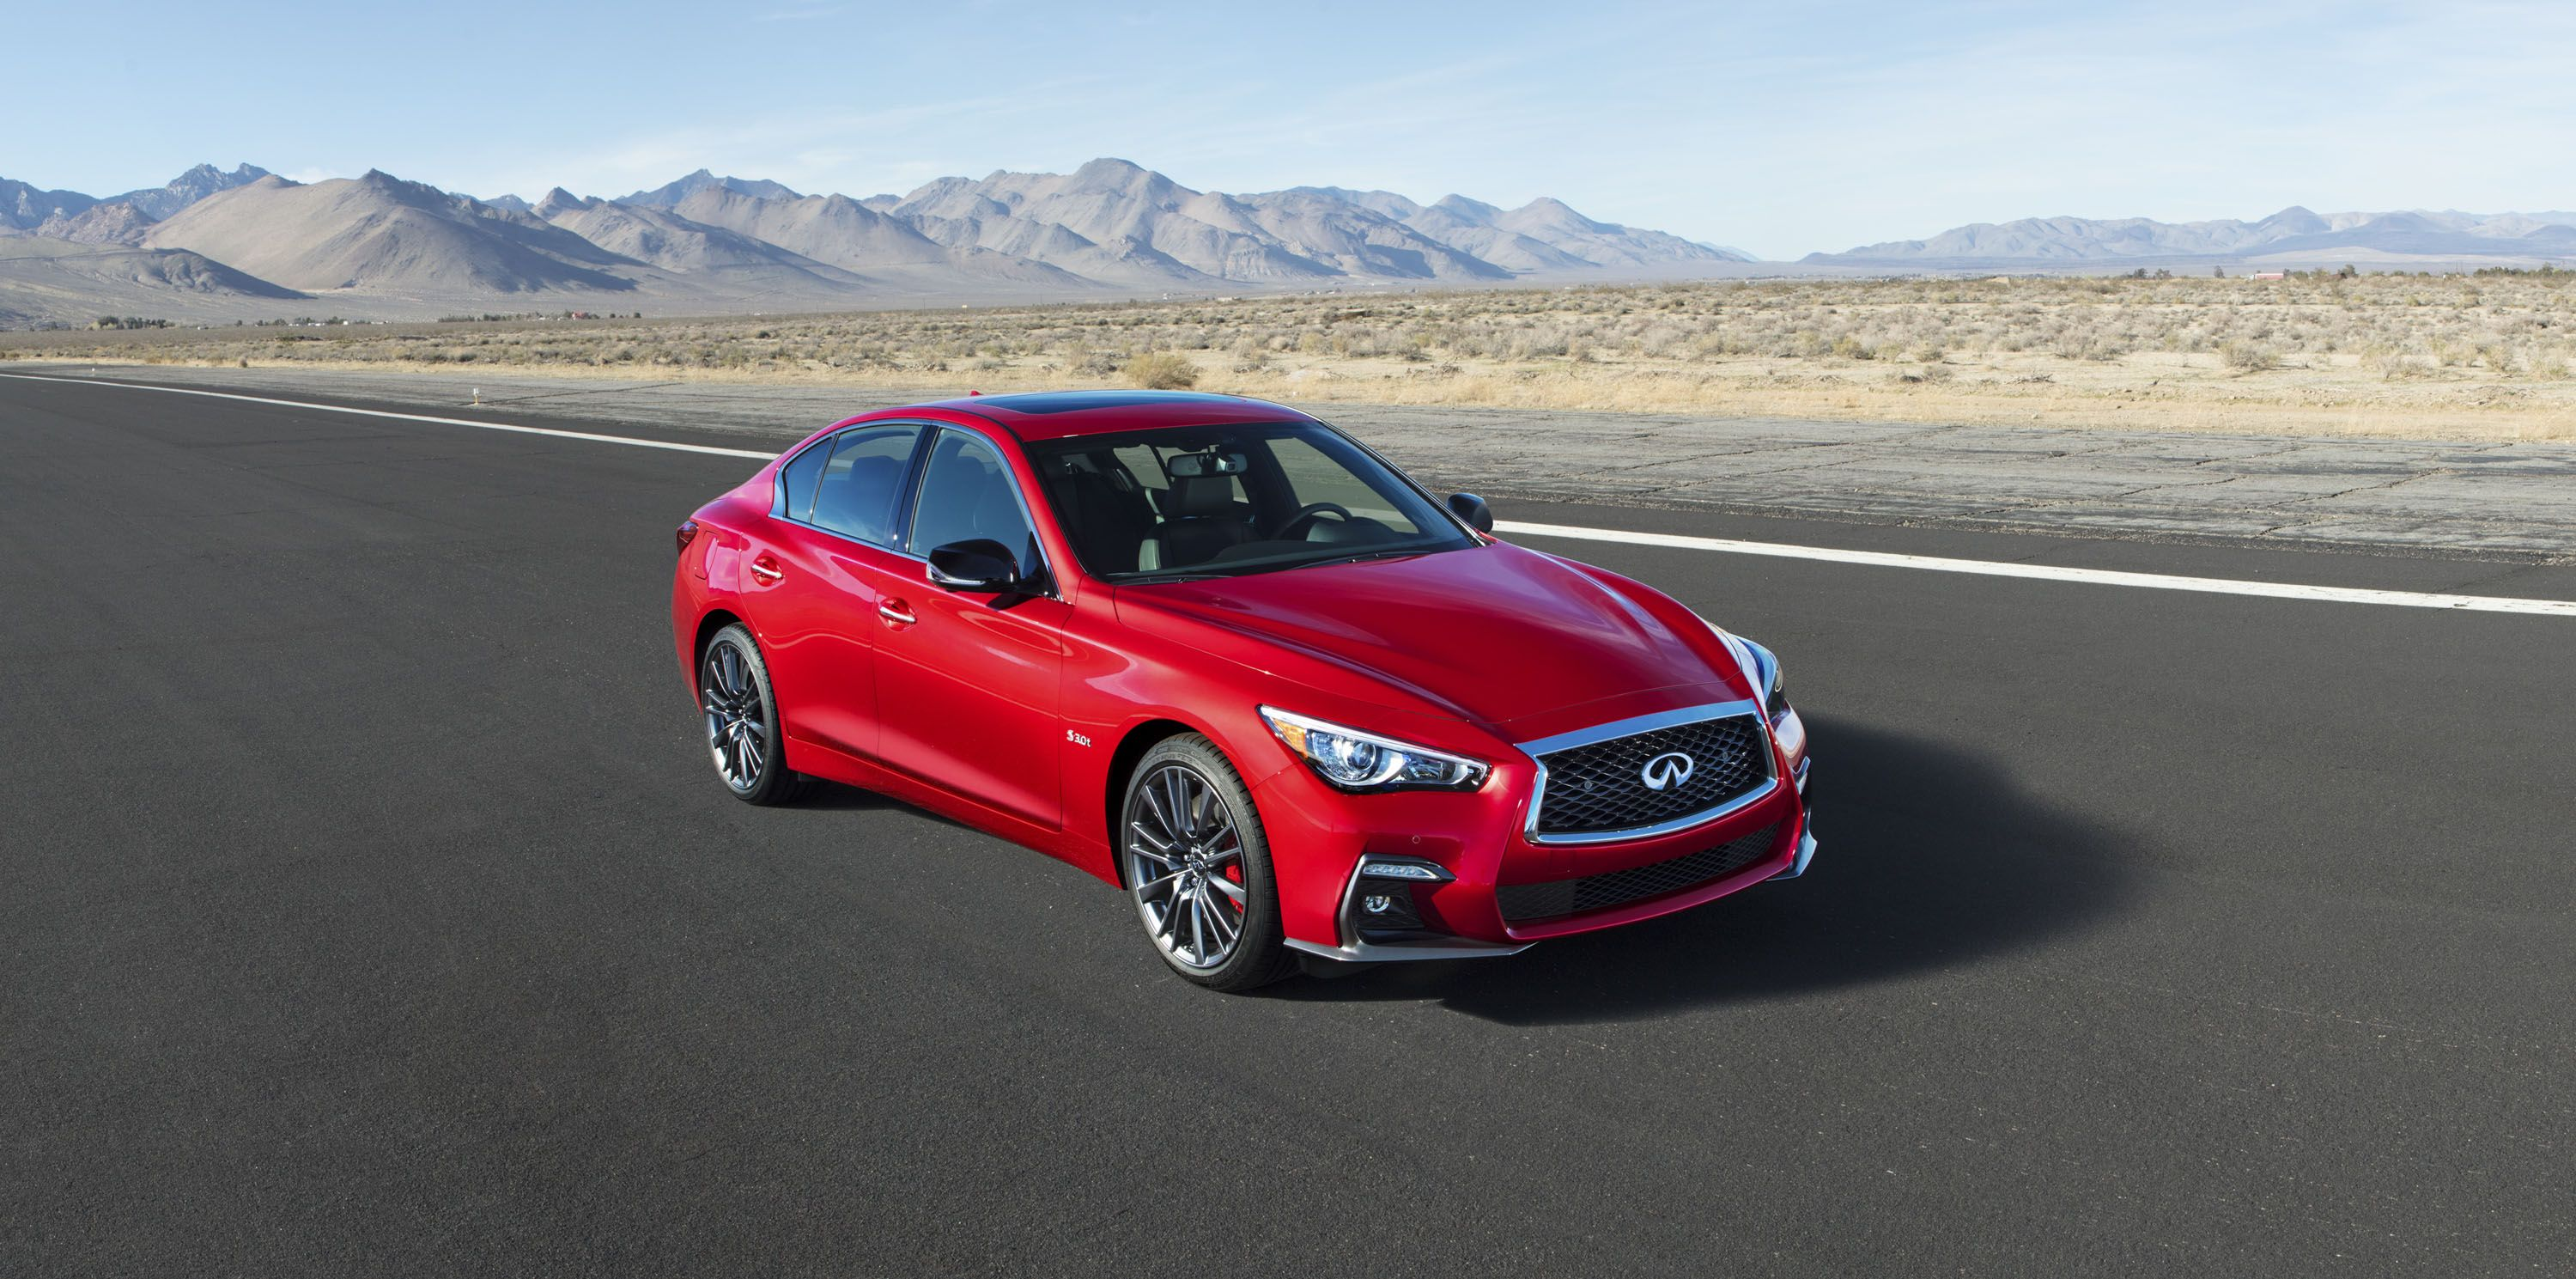 Infiniti Q50 Q60 And Q70 To Ditch Rwd Platform For Hybrid Awd Architecture Starting In 2021 Top Speed Infiniti Q50 Red Sport Infiniti Q50 Q50 Red Sport